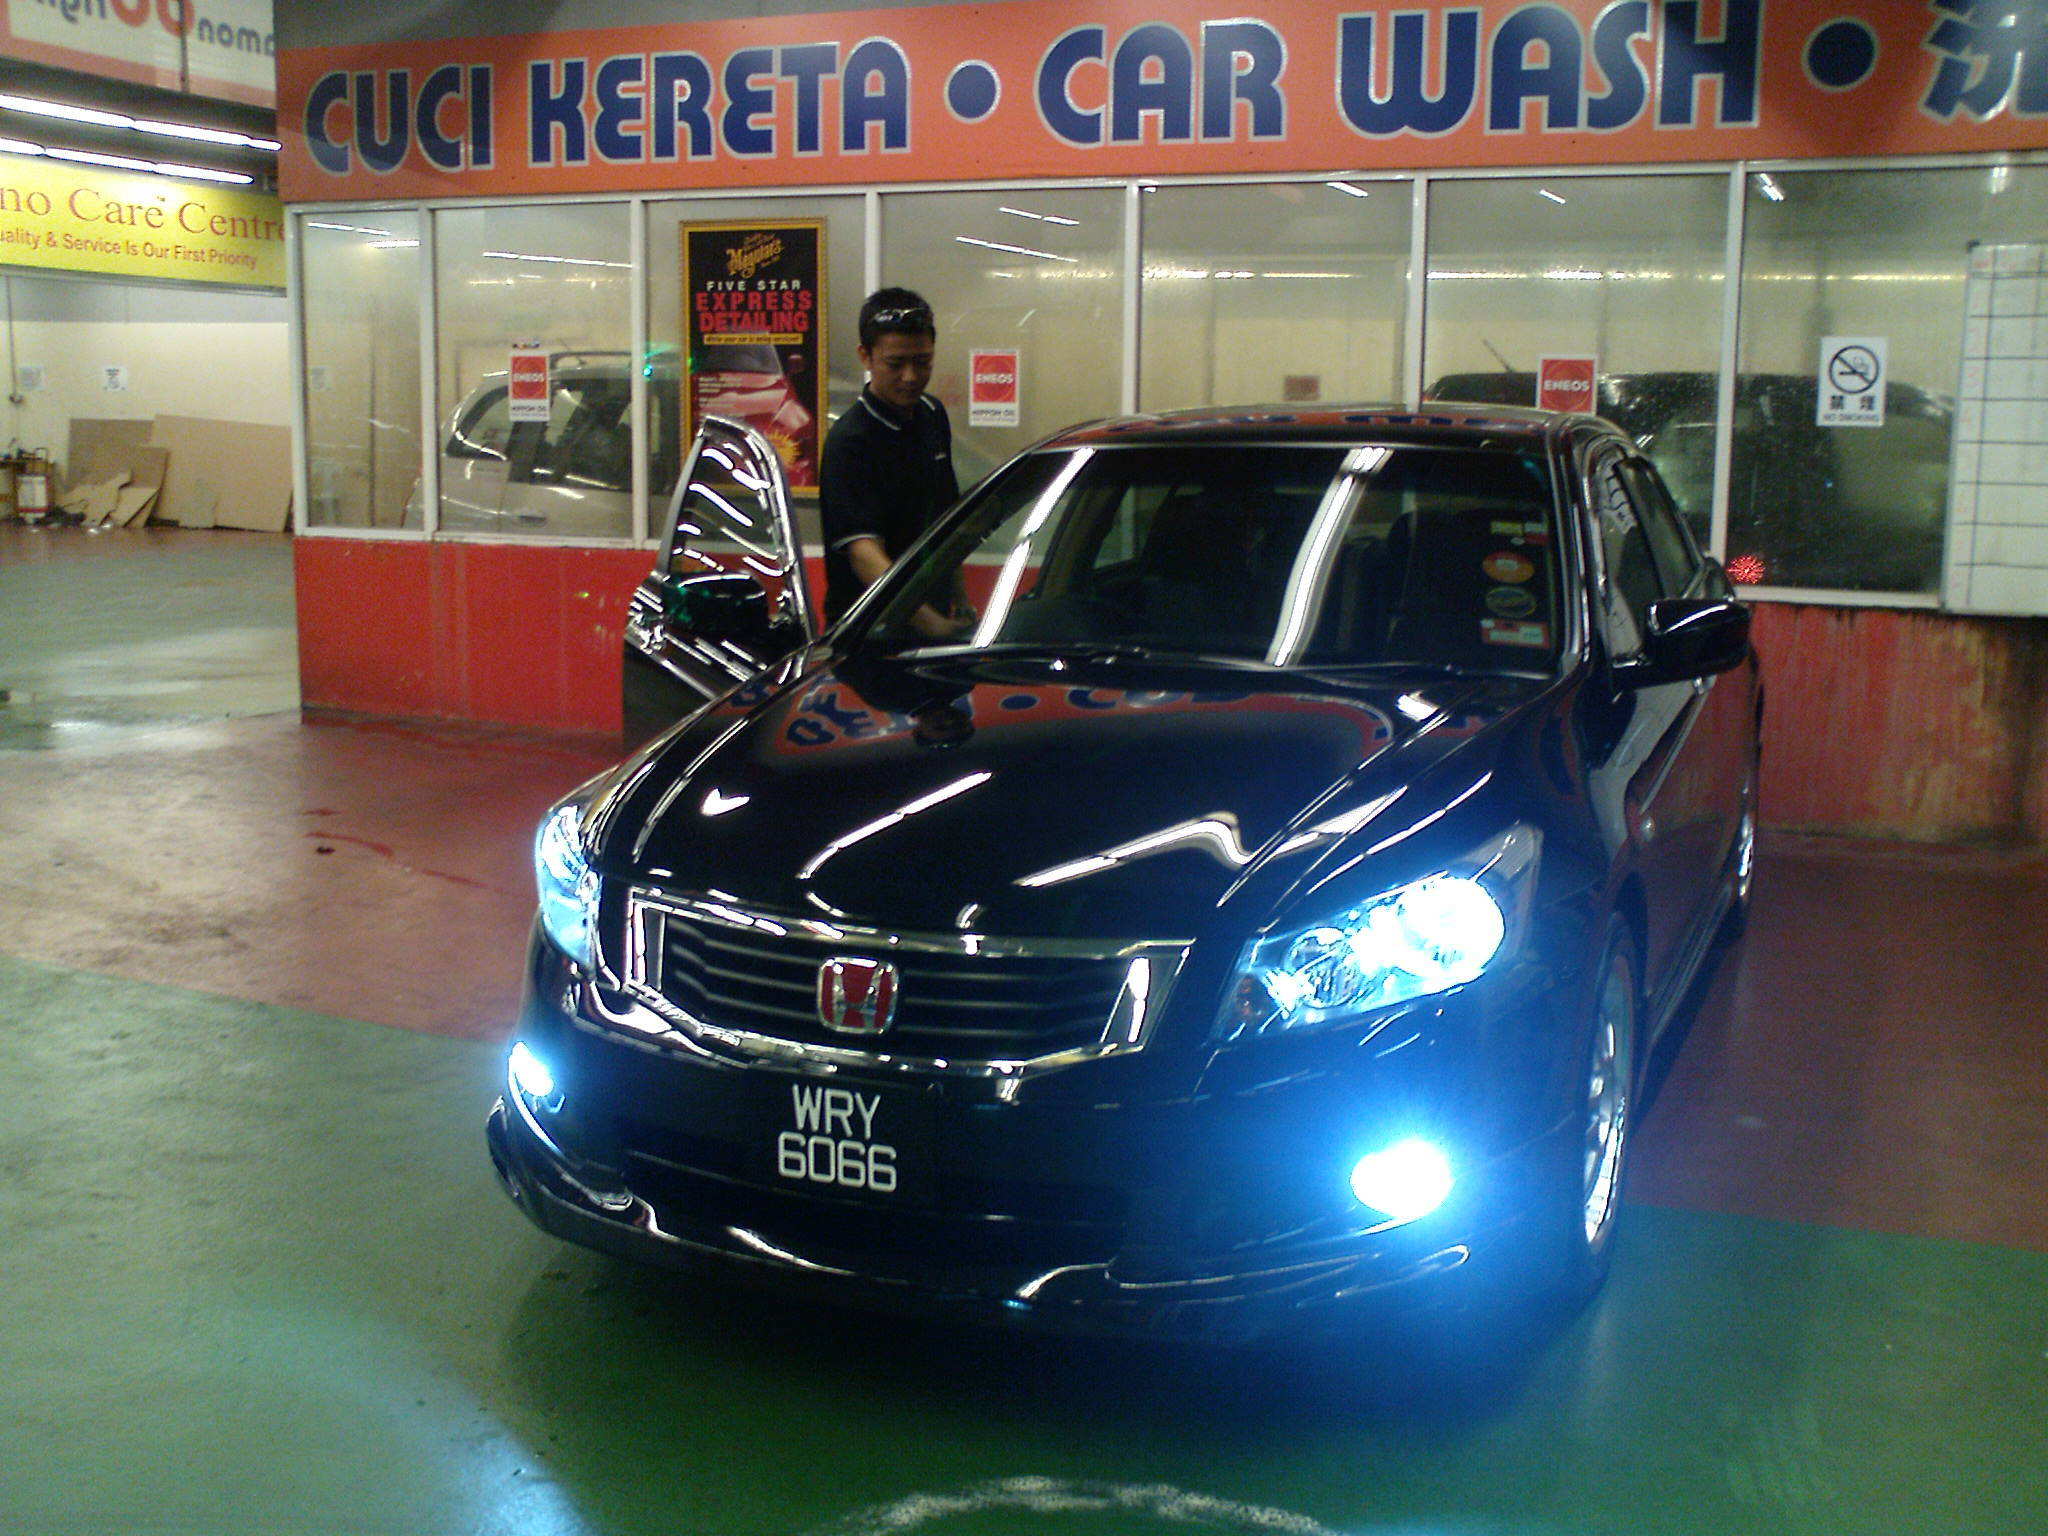 ivanchong 2009 Honda Accord